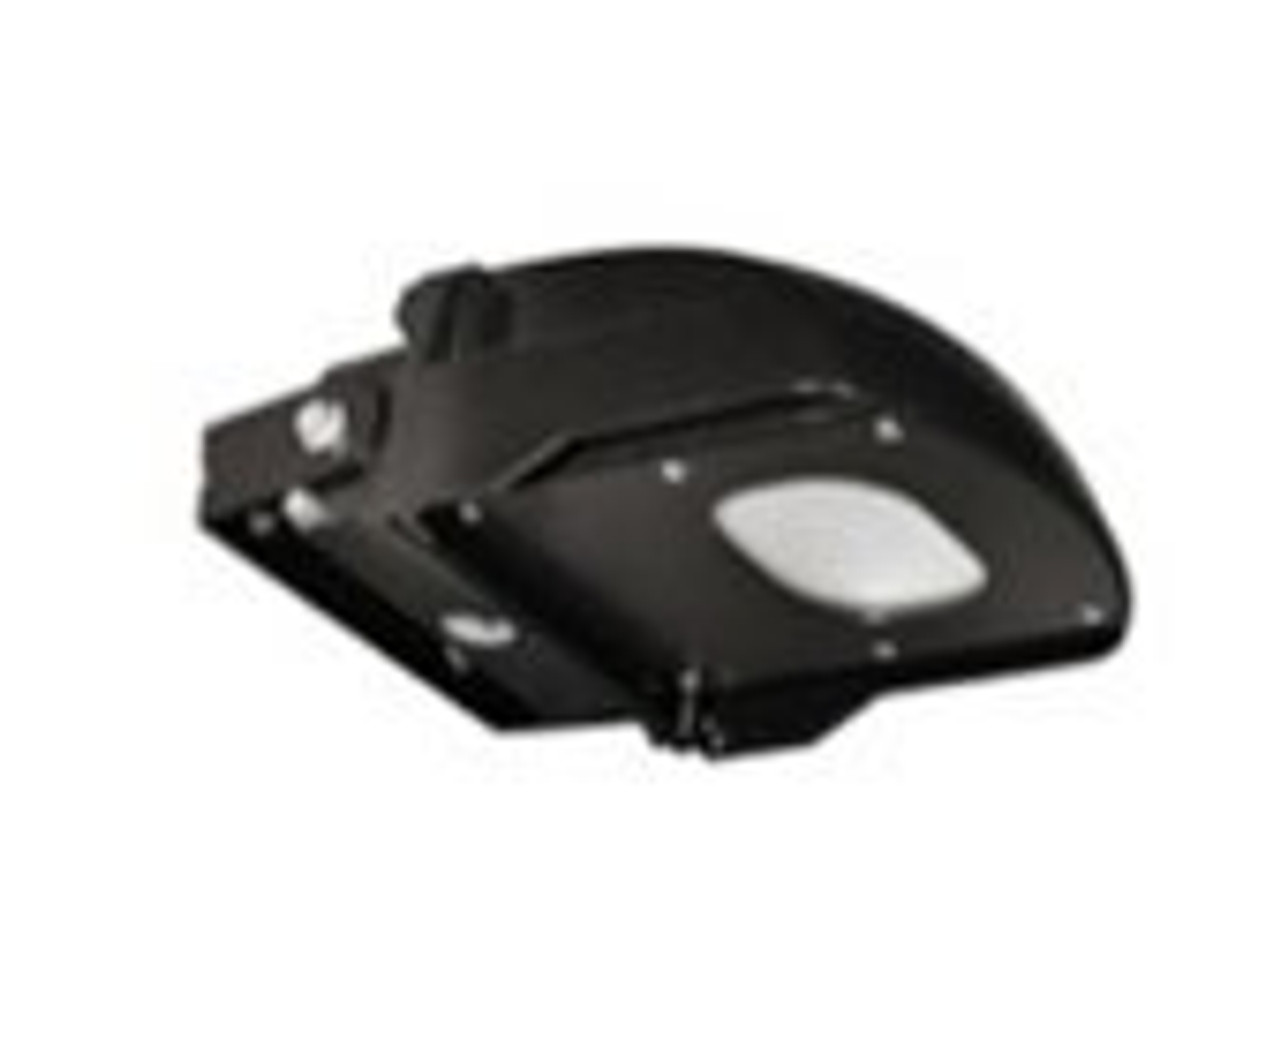 NaturaLED LED-FXWP35/57K 35W While Supplies Last Close-out items 2788 Lumens, 120-277V, 5506K or 7012 or LED-FXWP35/57K or NaturaLED